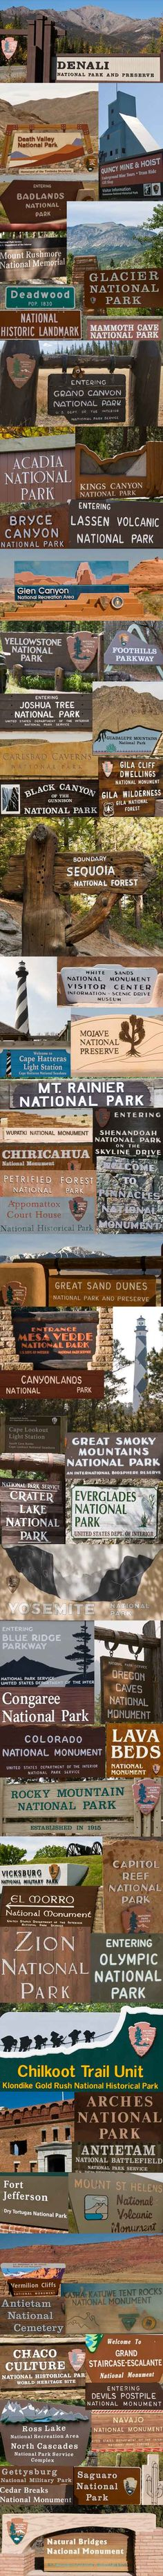 America's National Parks: For National Parks week here's some NPS inspiration... a collage of parks signs of 68 of the 123 NPS sites we've visited on our Journey (Flow397, LLC)